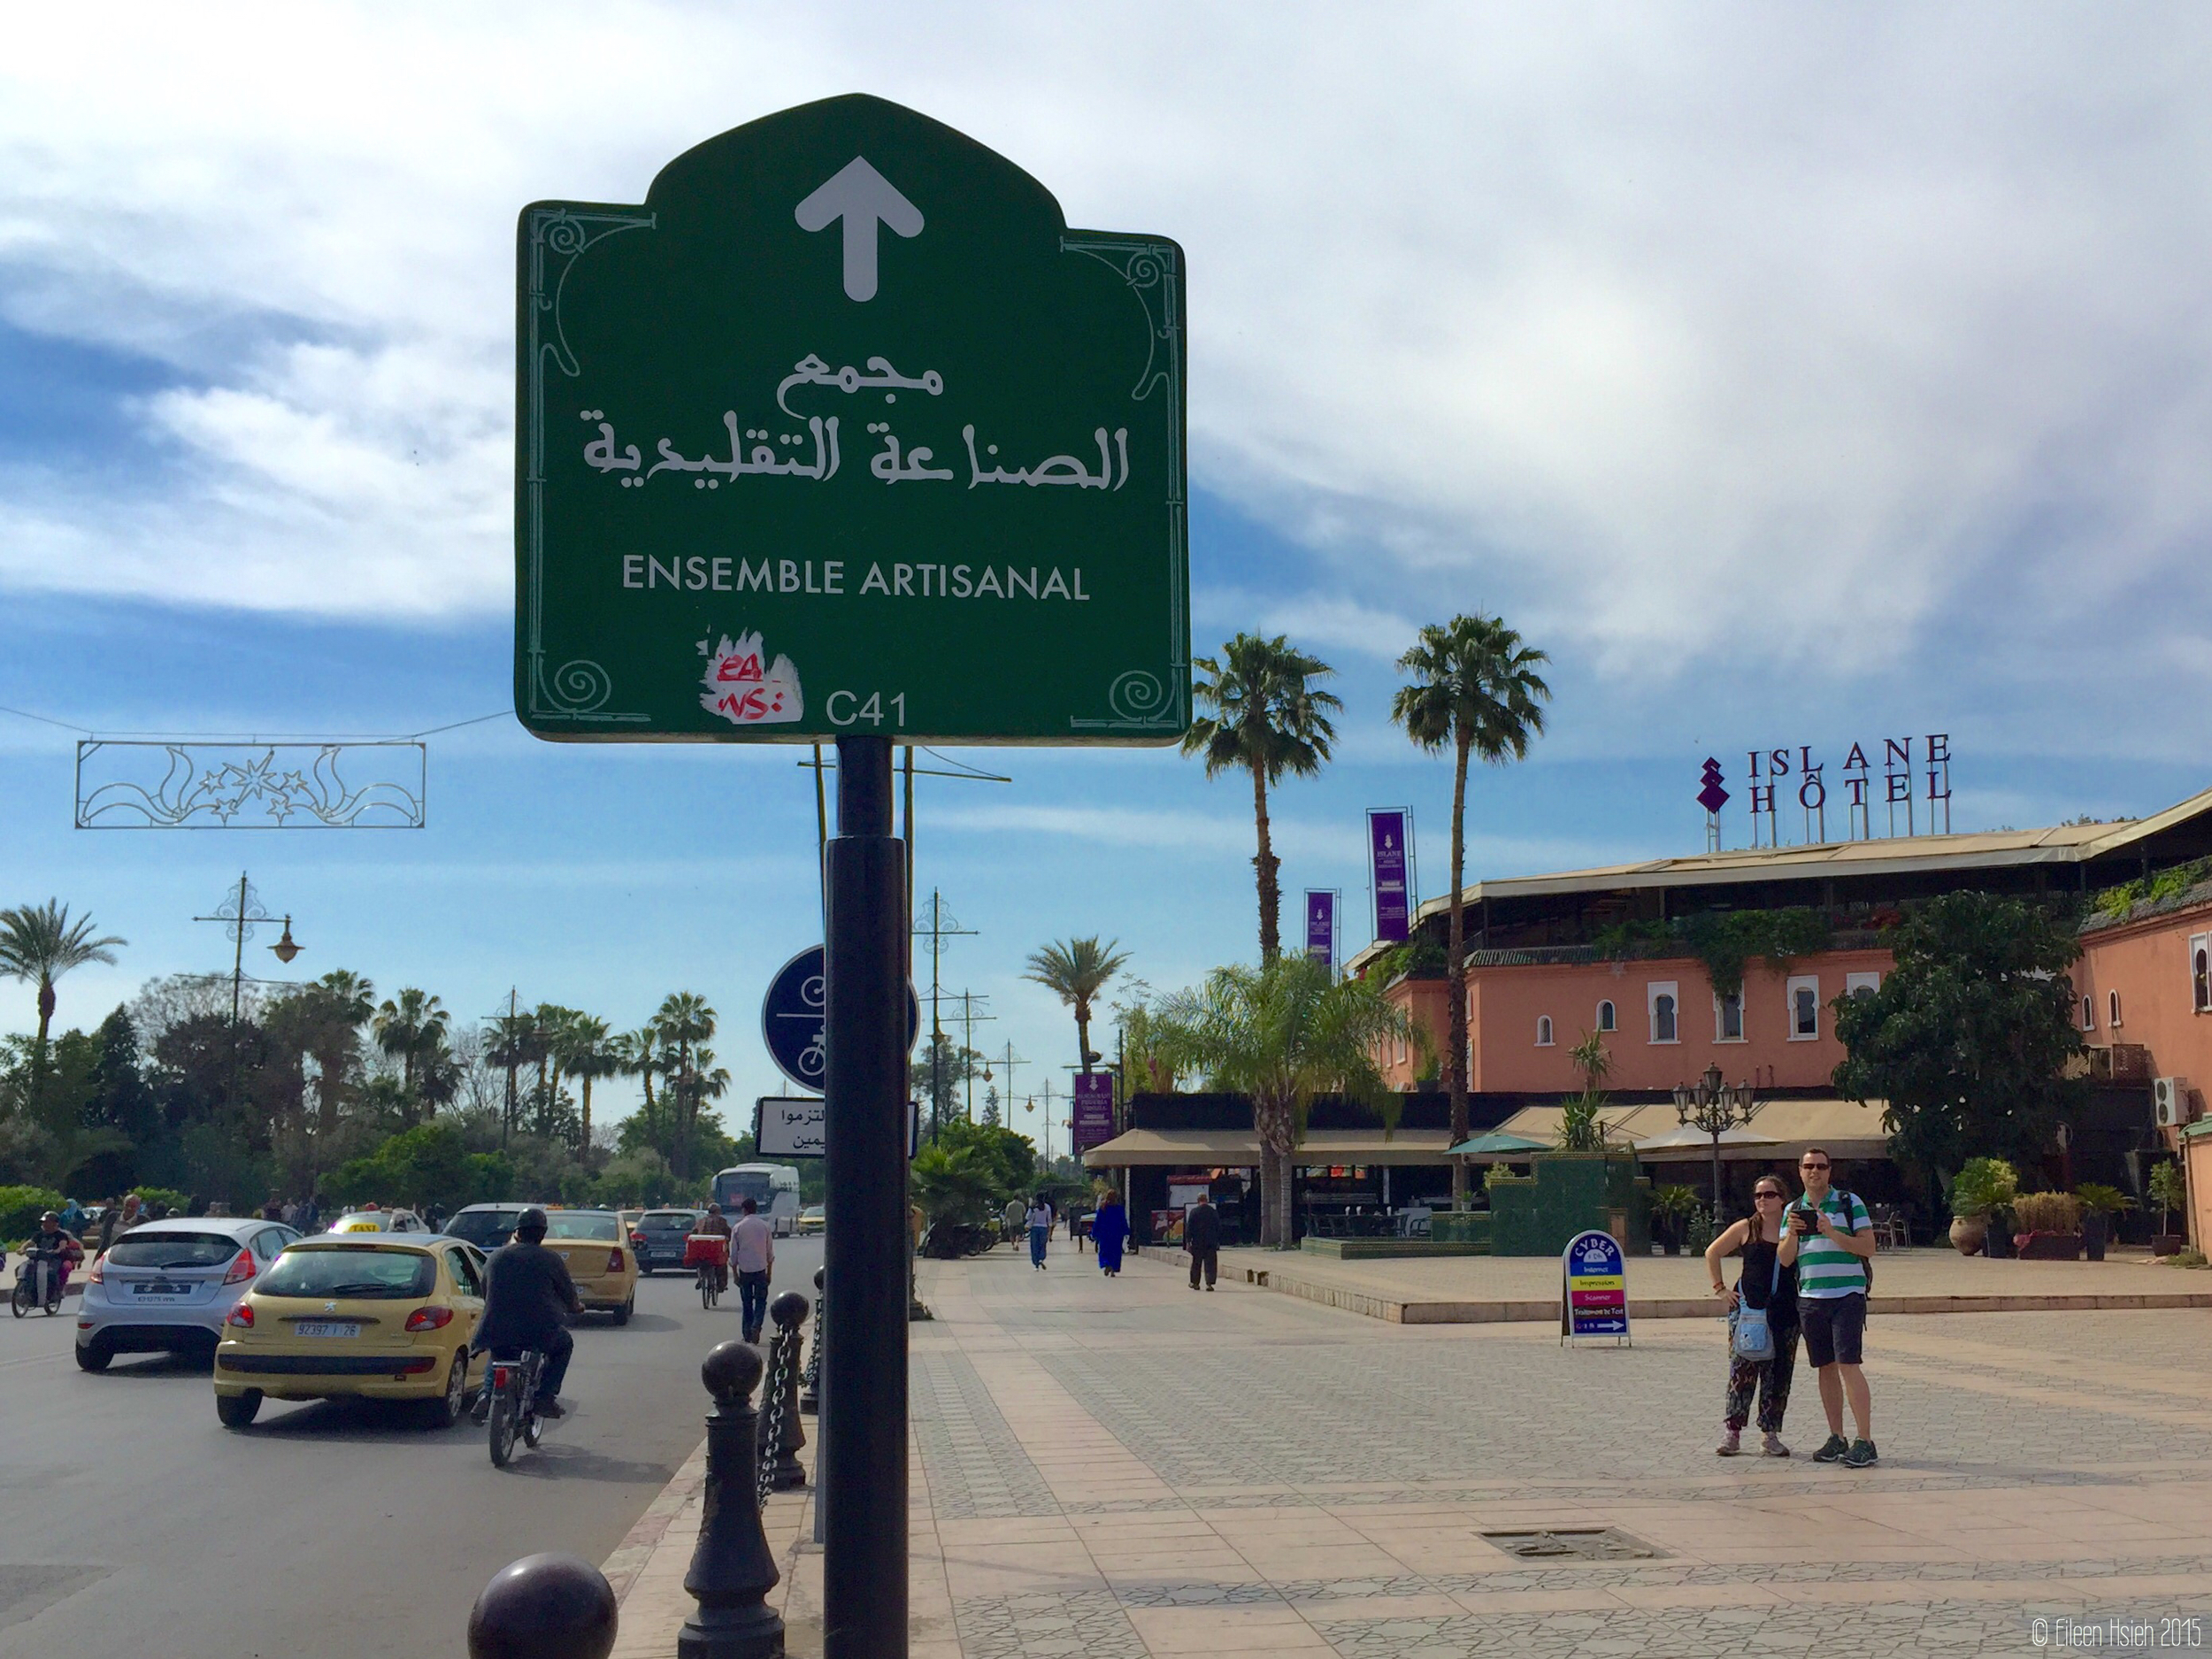 Boutique shops,cafes and hotels line the wide boulevard in the new part of Marrakech. 馬拉喀什新區裡寬敞的大道旁有許多精品店,咖啡廳與酒店。